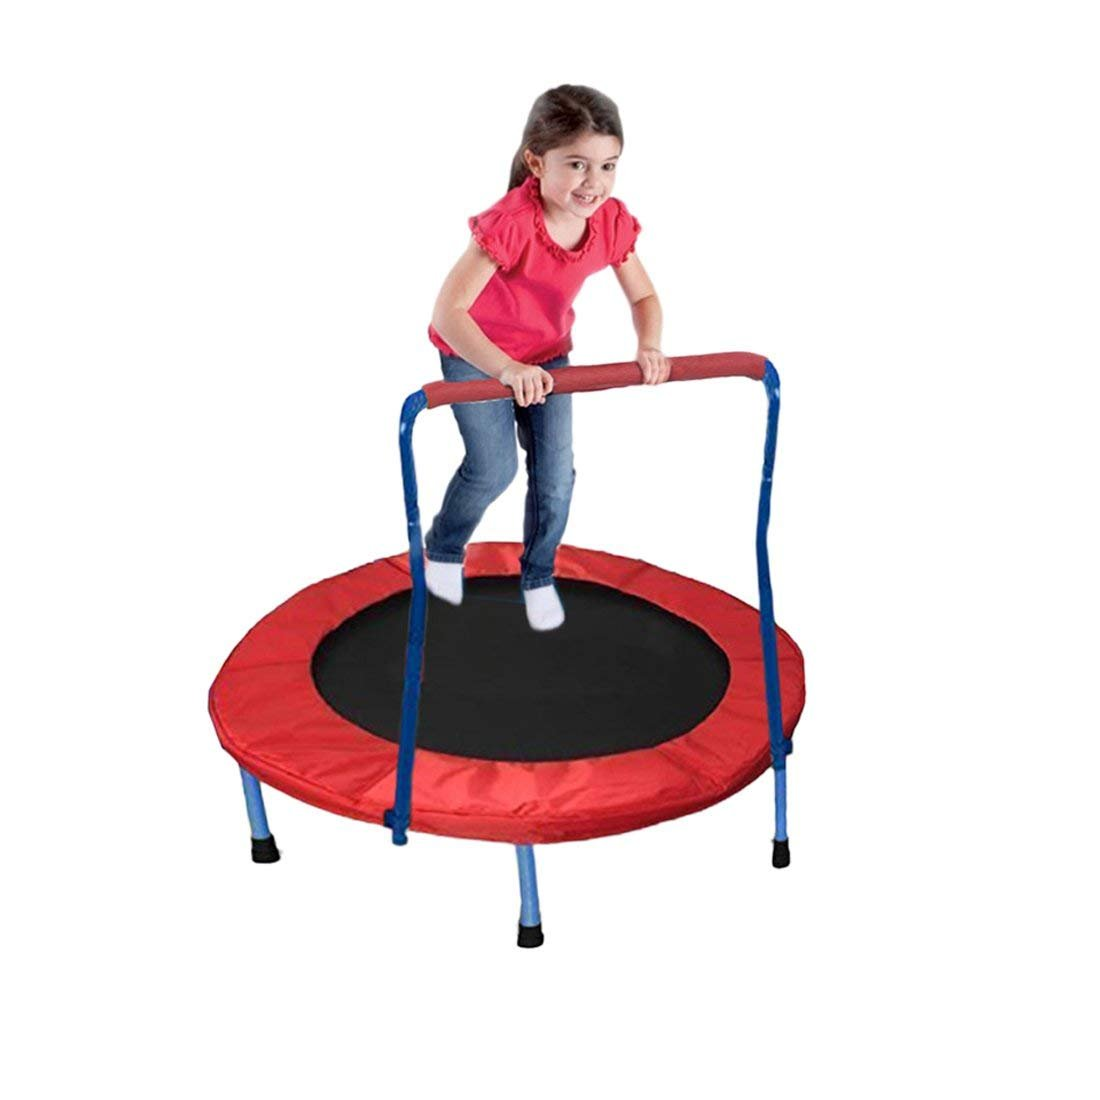 Dazzling Toys Mini Exercise Trampoline for Adults and Kids - with Safety Padded Frame- Indoor and Outdoor Fitness Rebounder with Handle Bar for Kids – Portable & Foldable 36